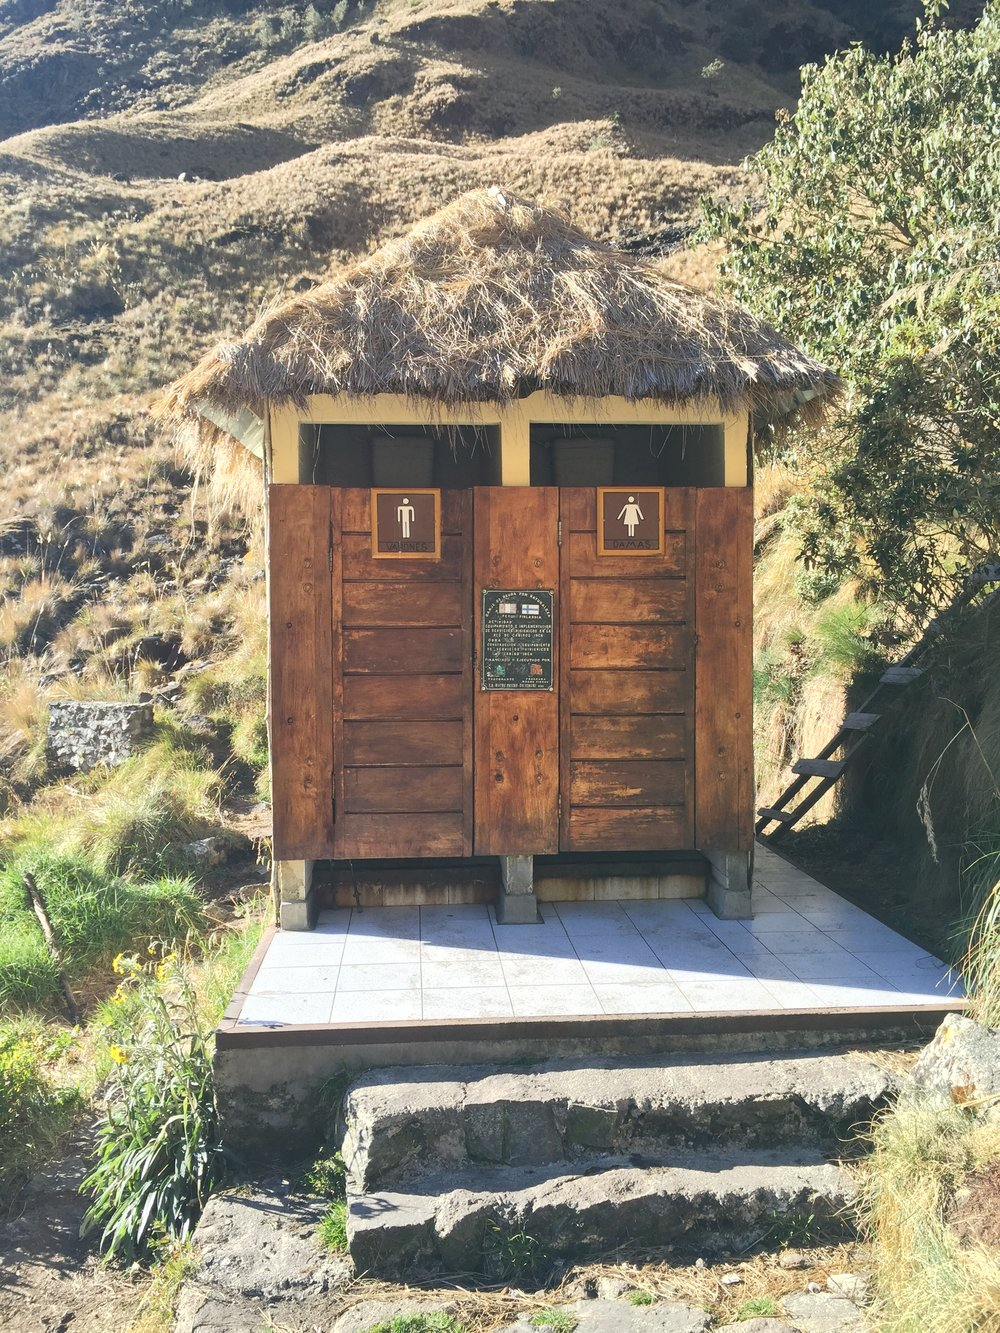 One of the nicest and cleanest looking toilet on the trail.  It was also randomly situated as you go down from Dead Woman's Pass.  Note that are is no sink or any other amenities and both bathrooms are identical.